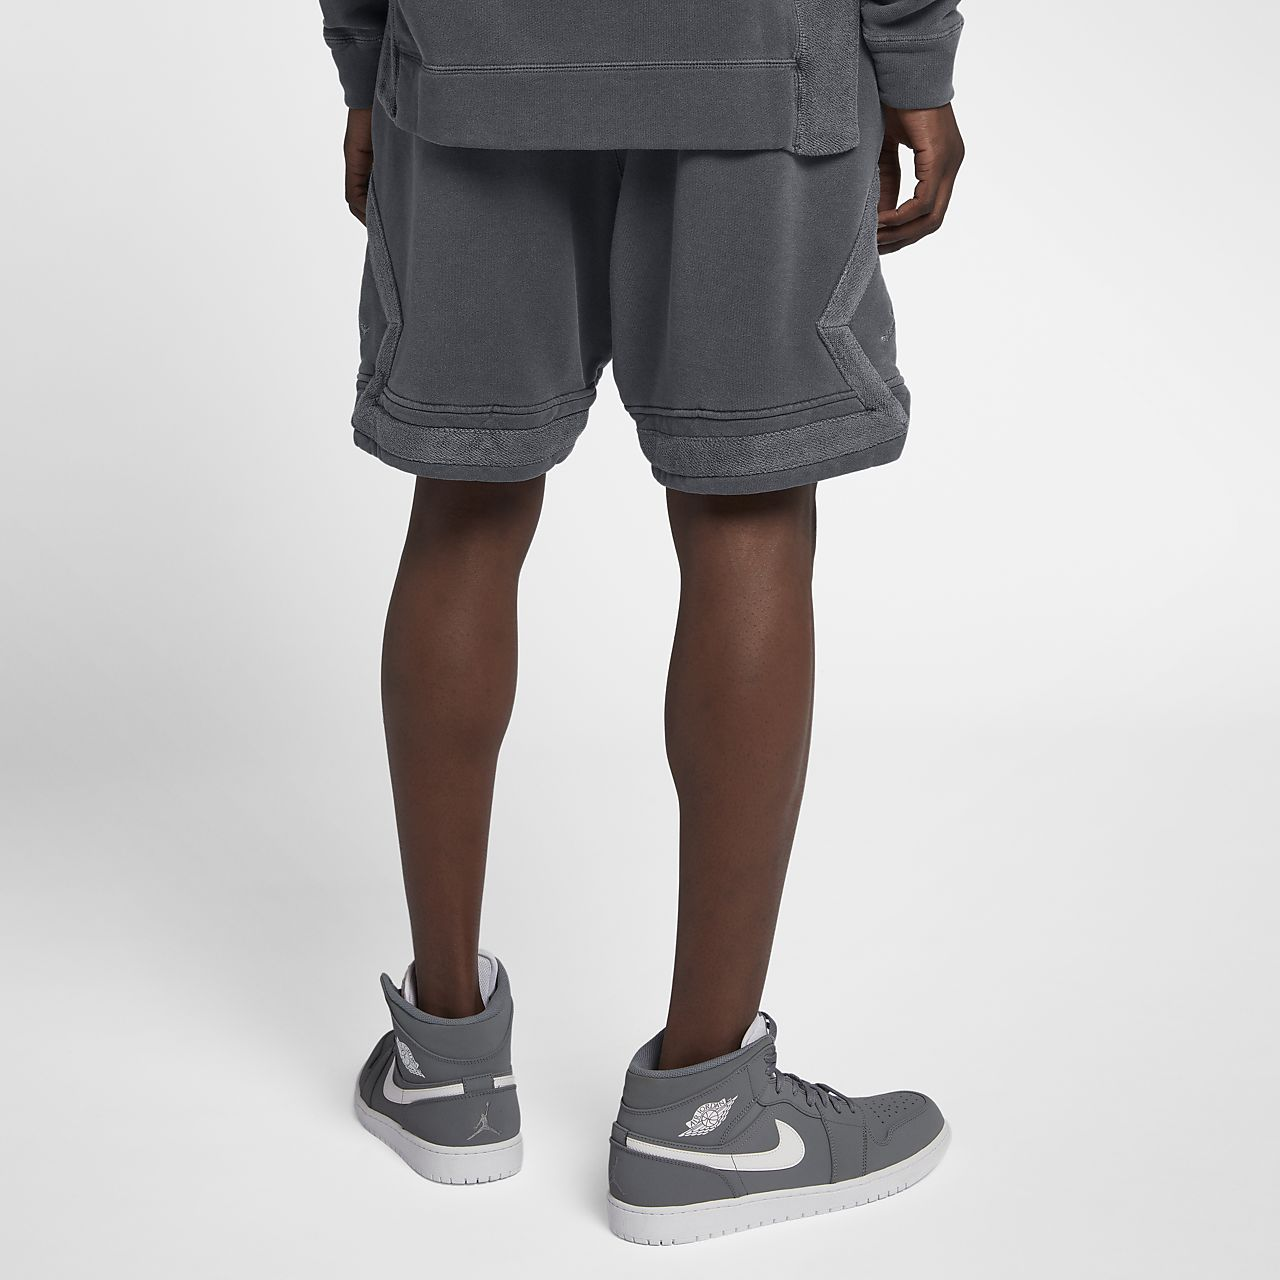 8e3aea7bbd8 Jordan Sportswear Diamond Men's Washed Fleece Shorts. Nike.com IN